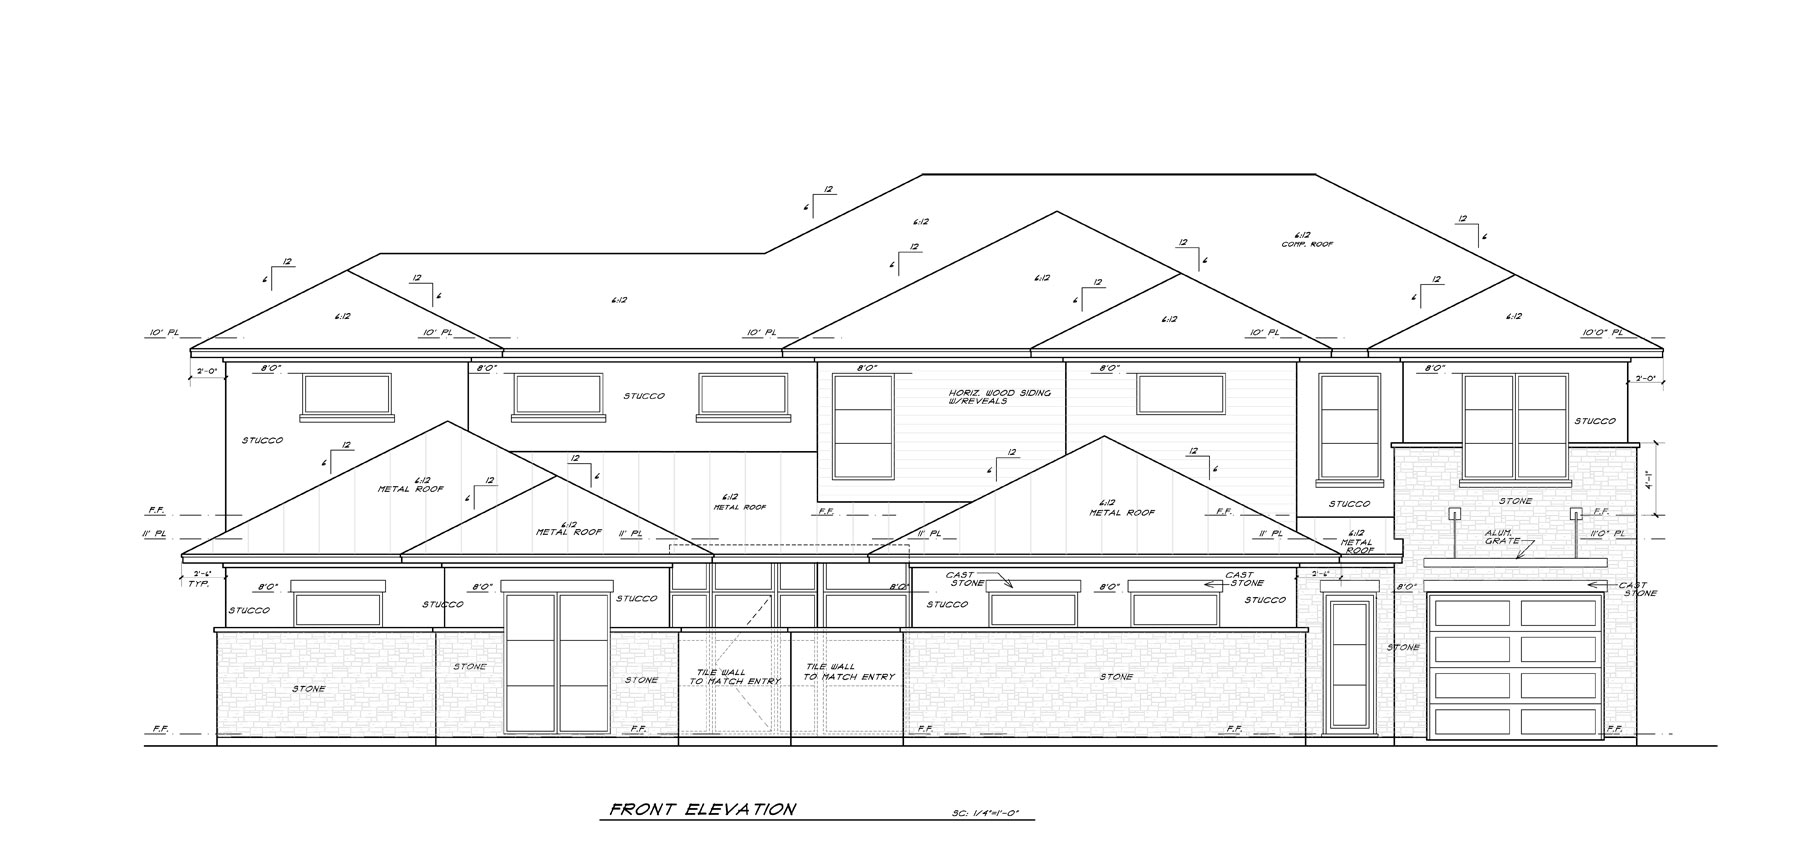 LOT FOR SALE (& AVAILABLE CONCEPT PLAN) AT 6807 ORCHID, DALLAS, TX 75230 IN PRESTON HOLLOW AREA